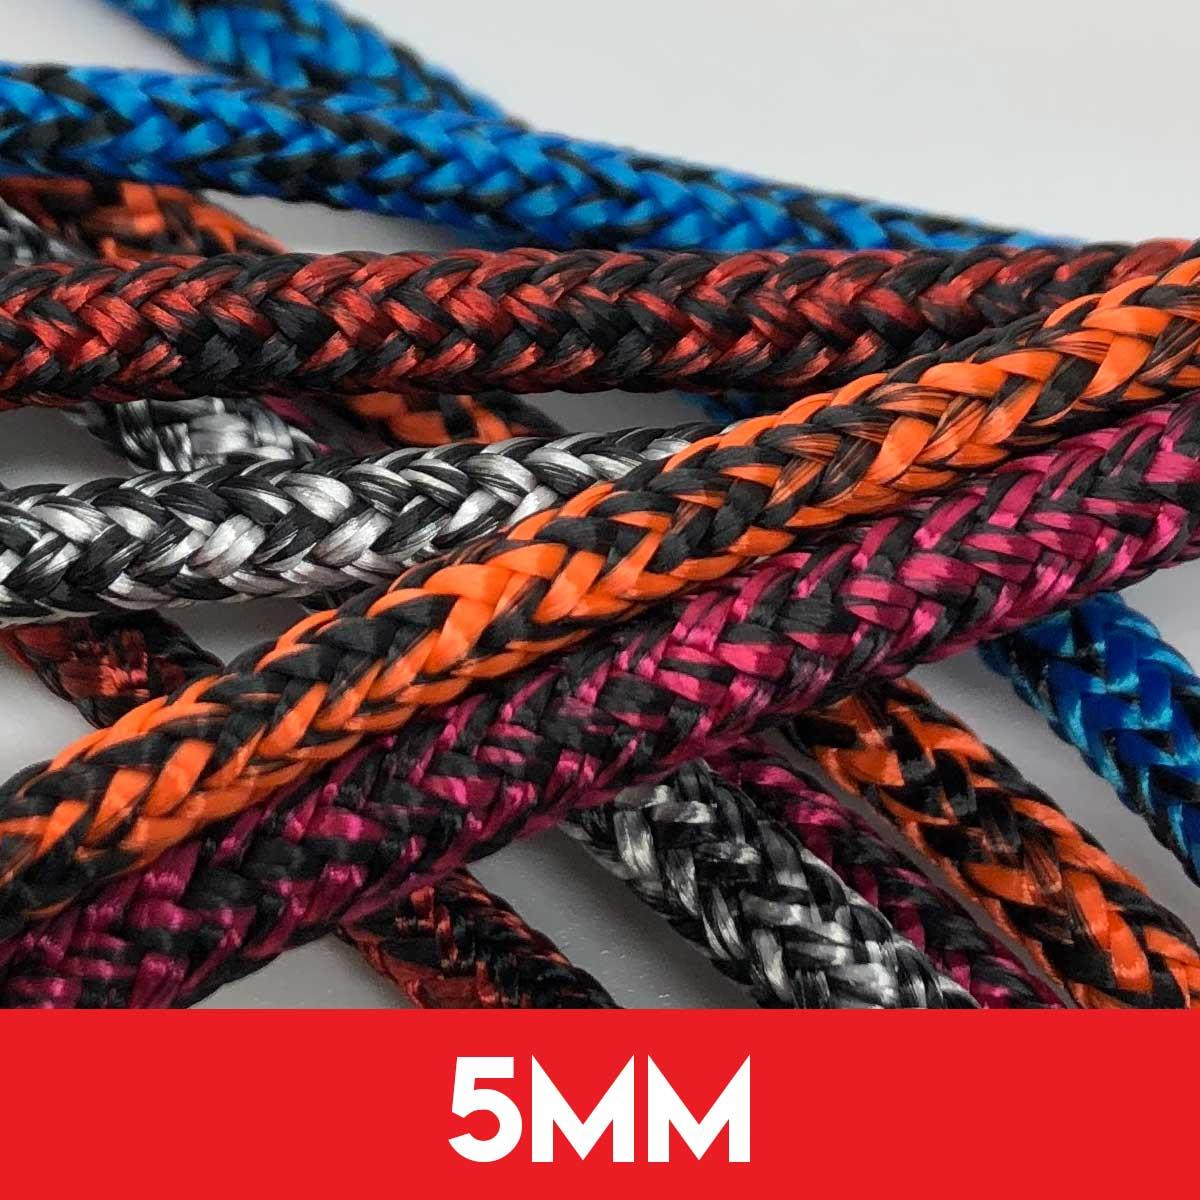 5mm Dyneema Kingfisher Evolution Race Rope